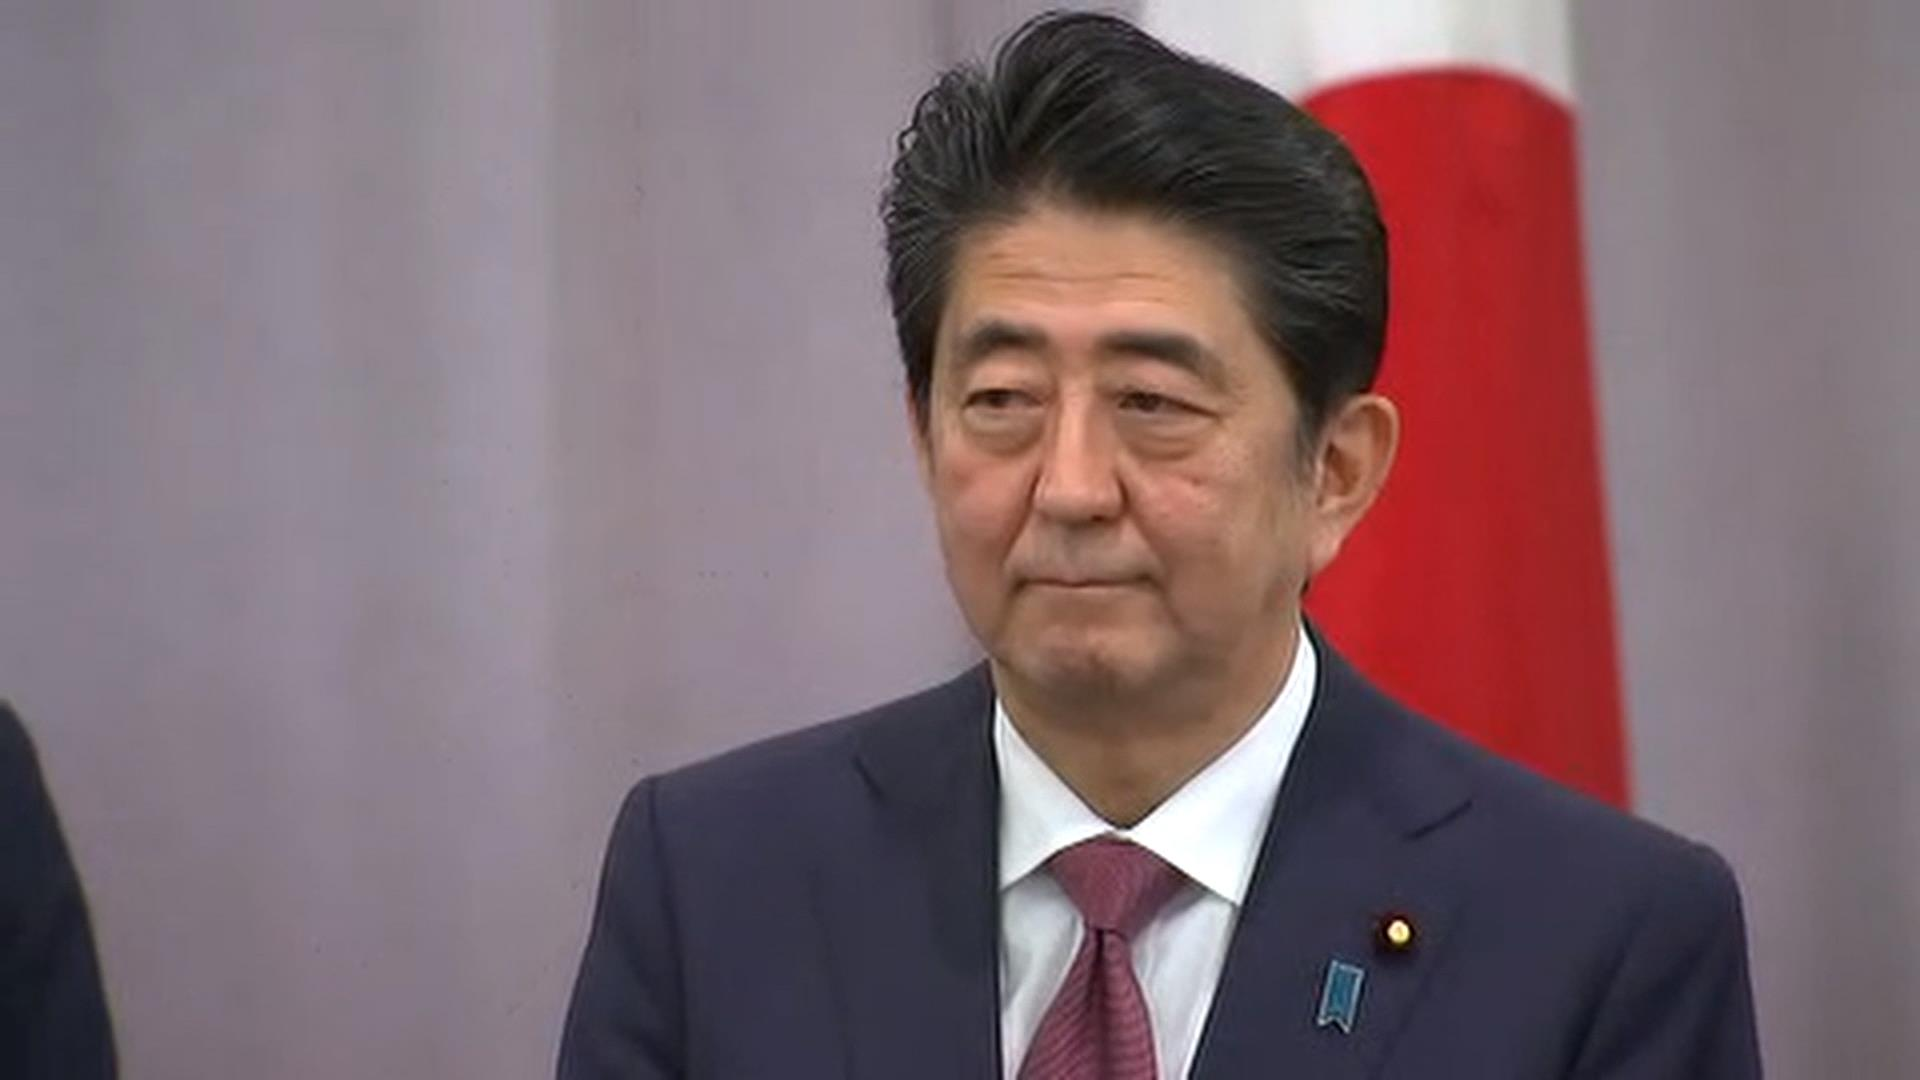 Japanese Prime Minister Shinzo Abe Meets With Donald Trump